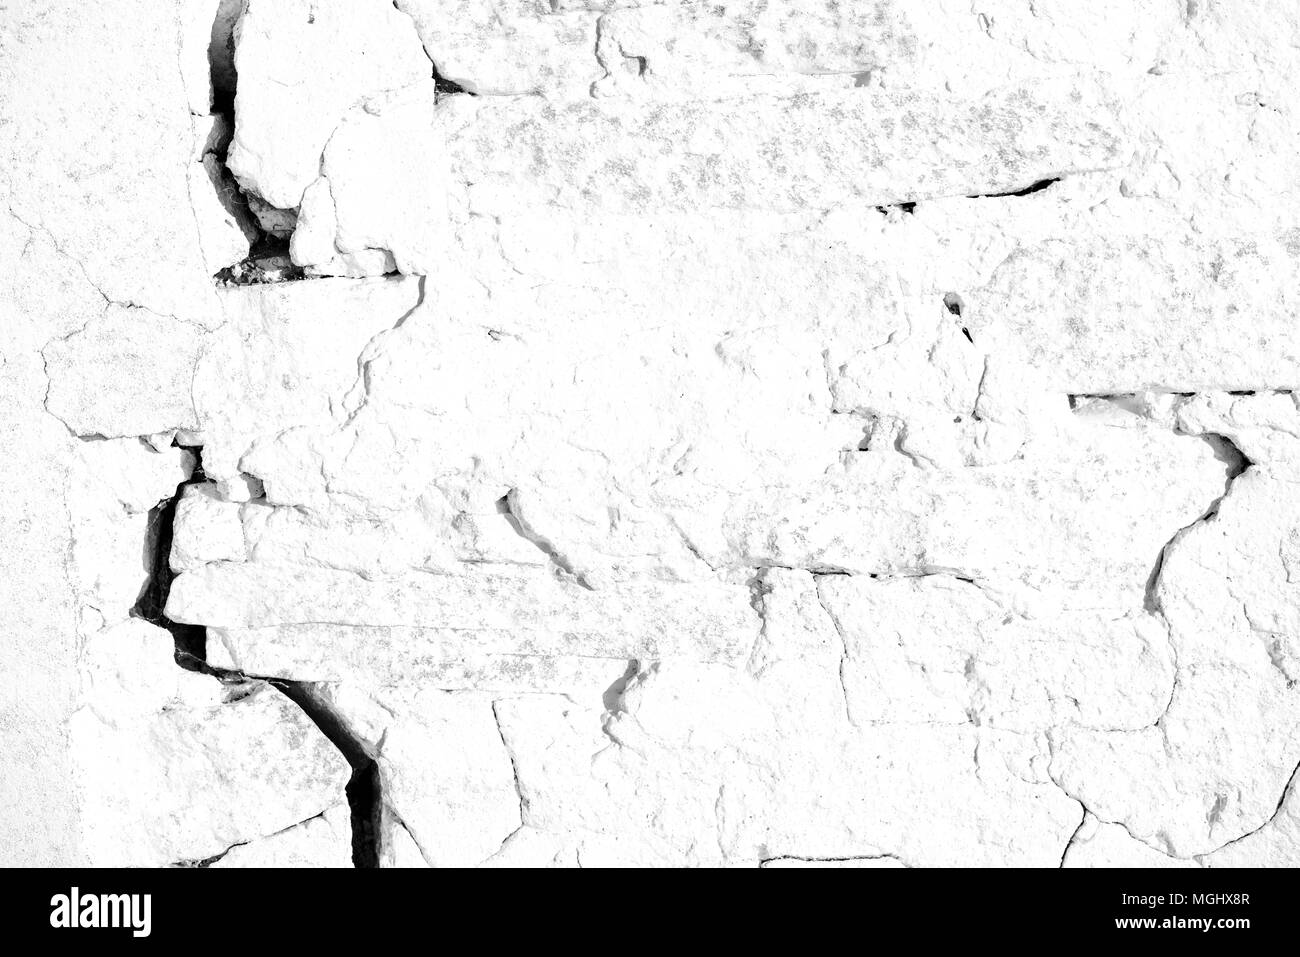 Old cracked plaster wall with lines of broken plastering due to age and decay of the vintage construction work Stock Photo